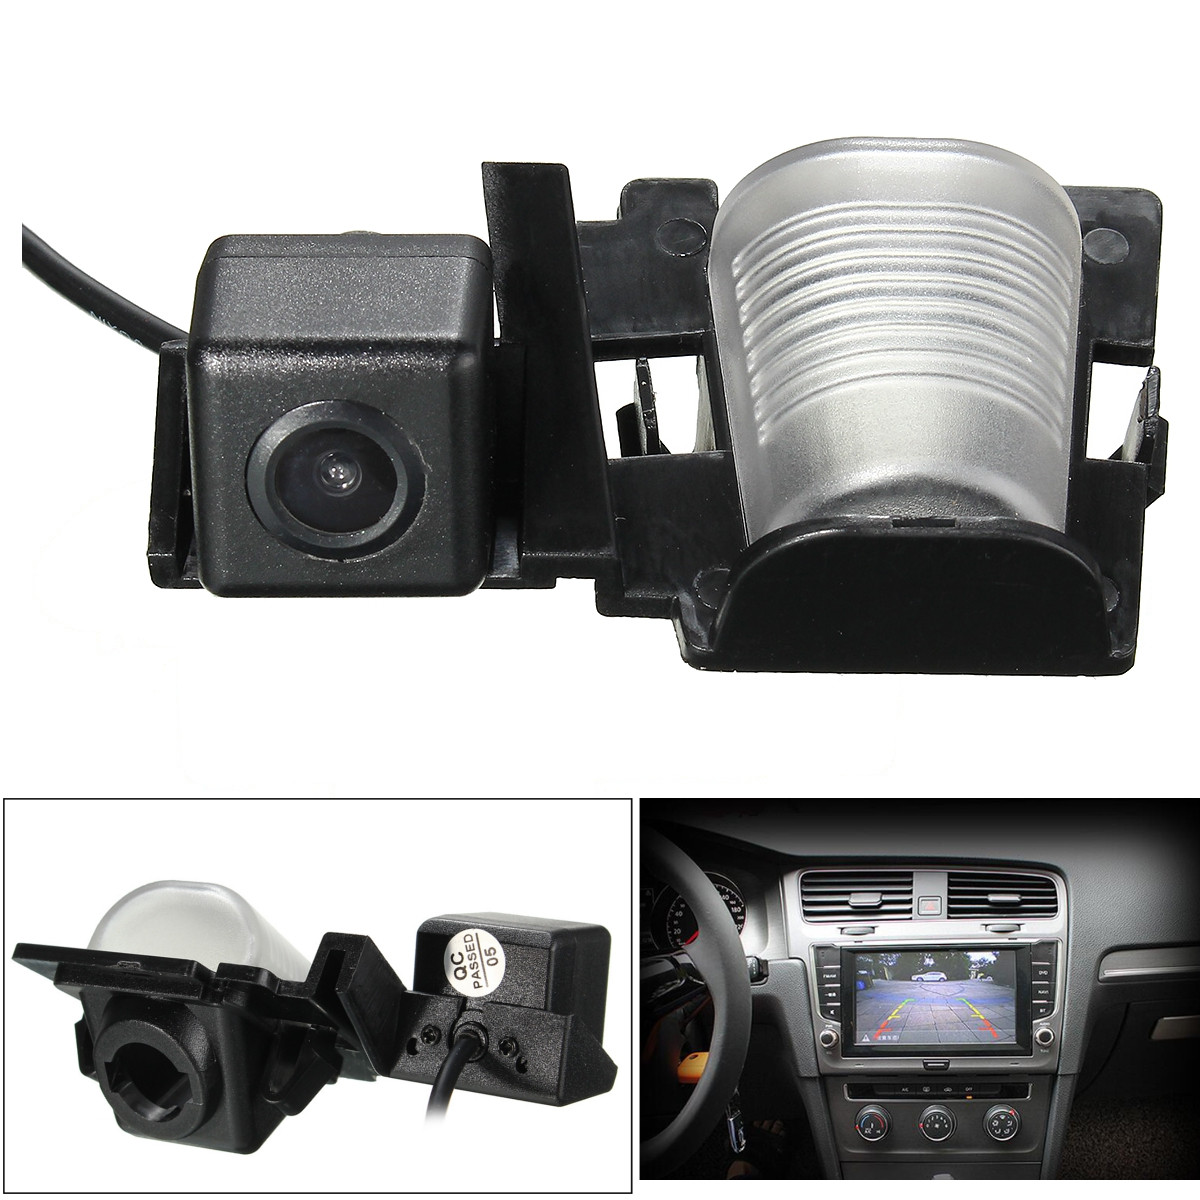 Car Rear View Camera Reverse Parking Backup Camera 120 Degree Angle CCD HD Waterproof For JEEP/Wrangler 2012 2013Car Rear View Camera Reverse Parking Backup Camera 120 Degree Angle CCD HD Waterproof For JEEP/Wrangler 2012 2013